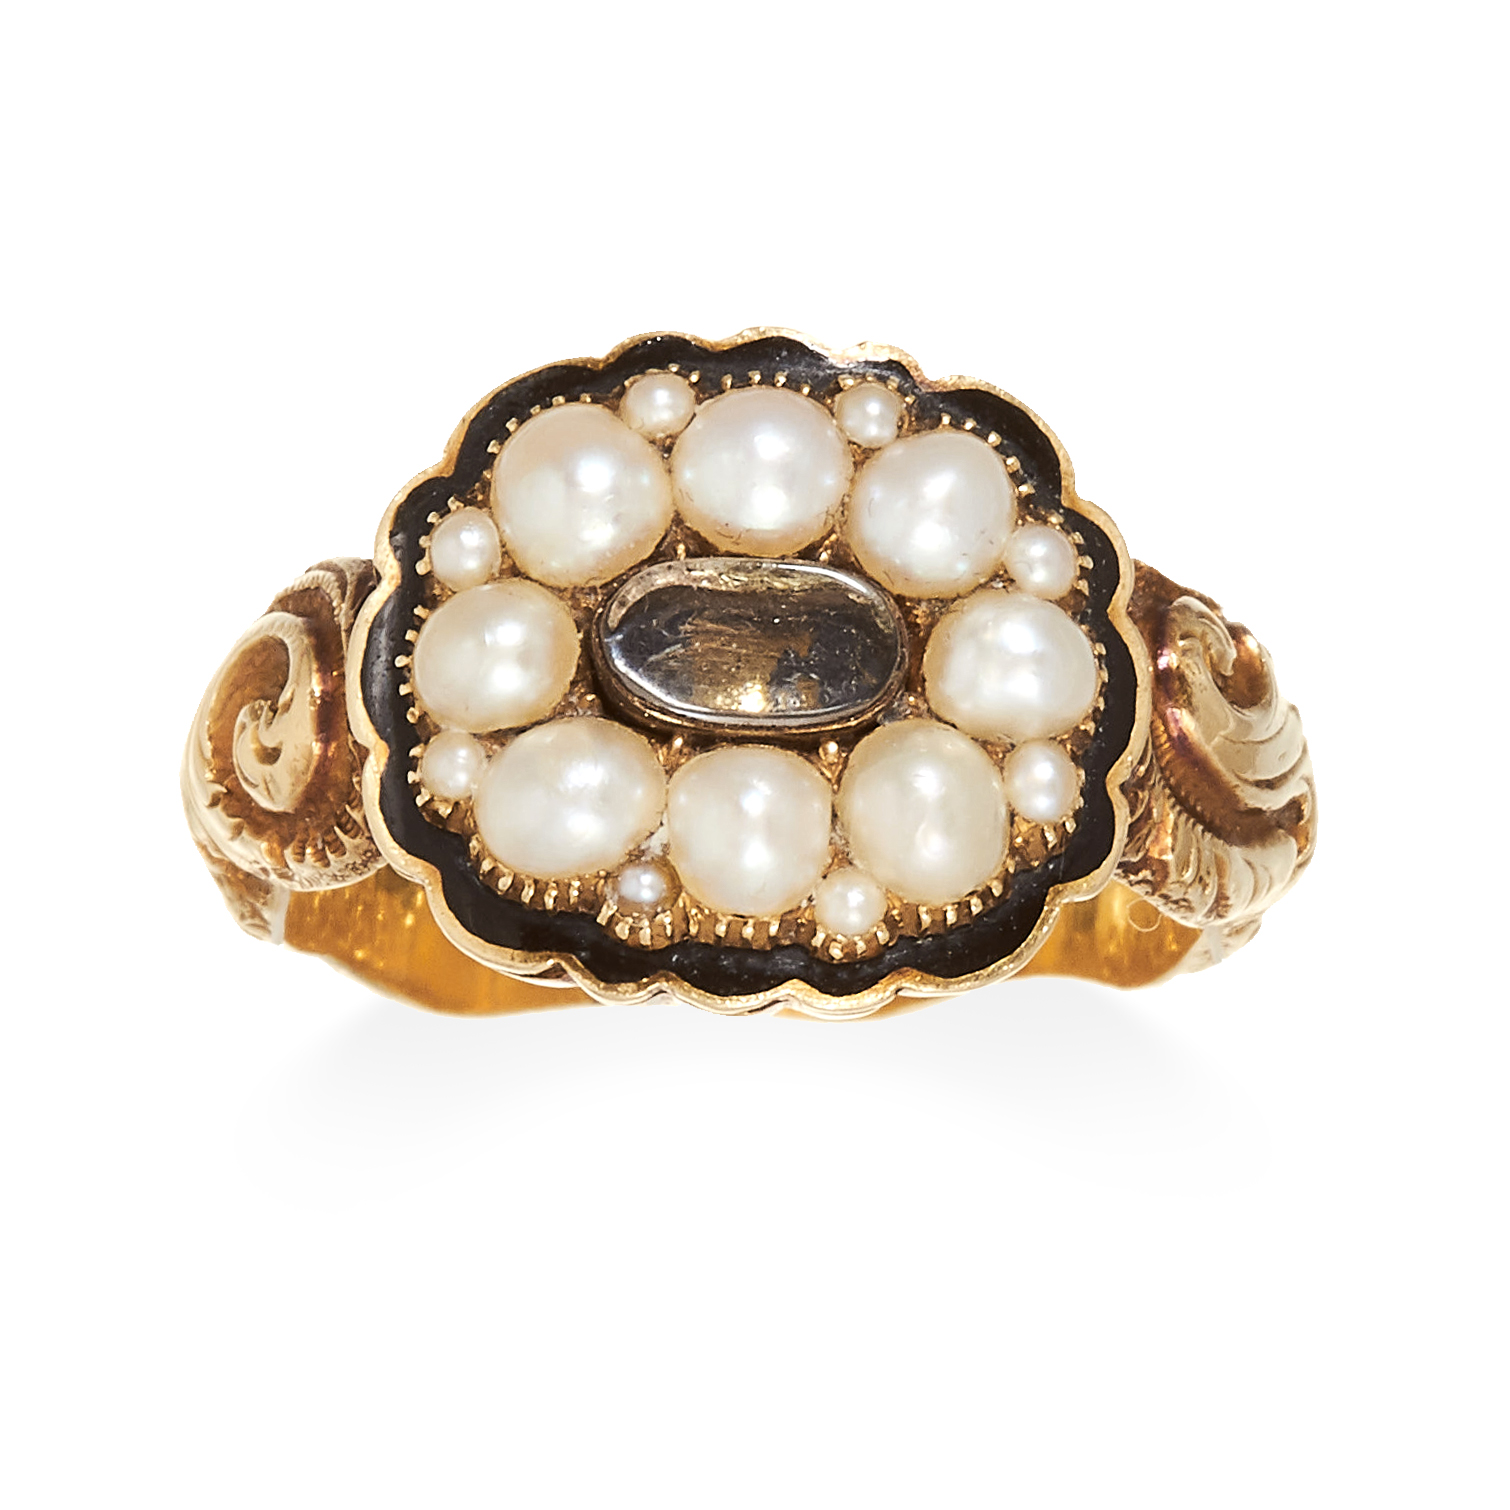 AN ANTIQUE ENAMEL AND PEARL MOURNING RING in 18ct carat yellow gold, the central woven hairwork